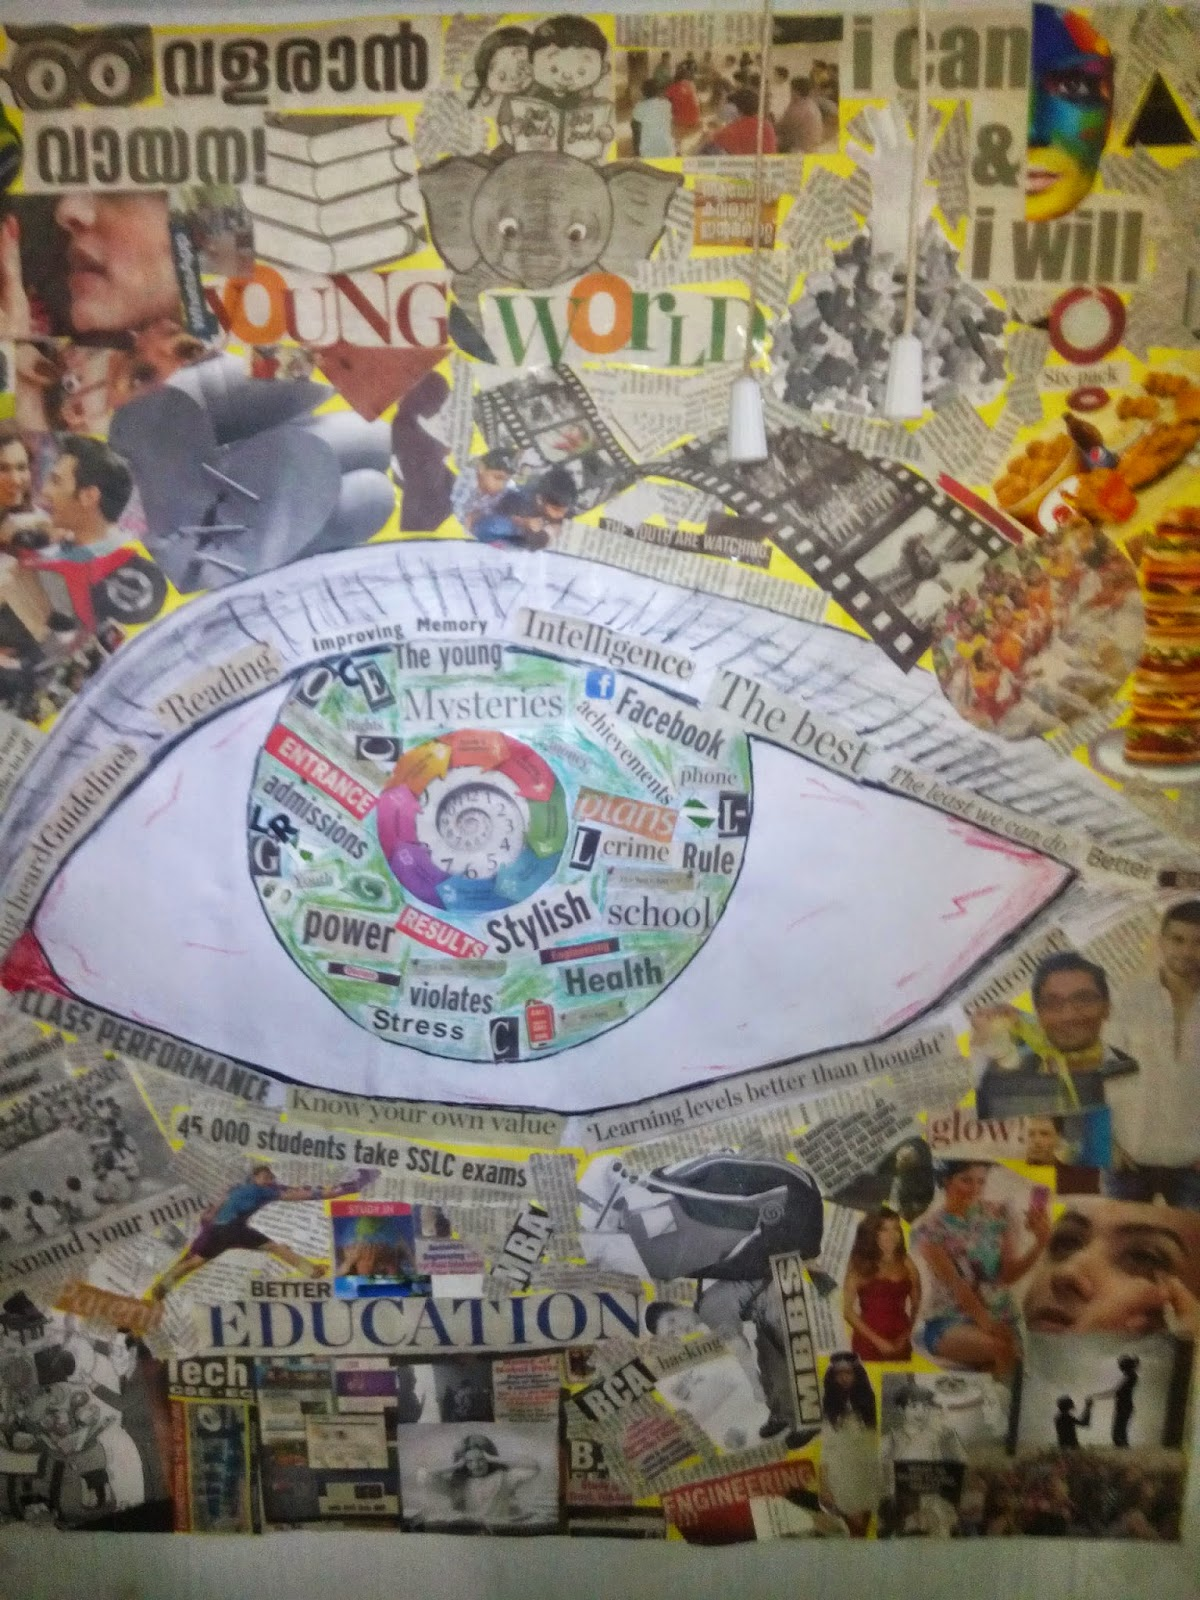 Shape of the eye made in collage